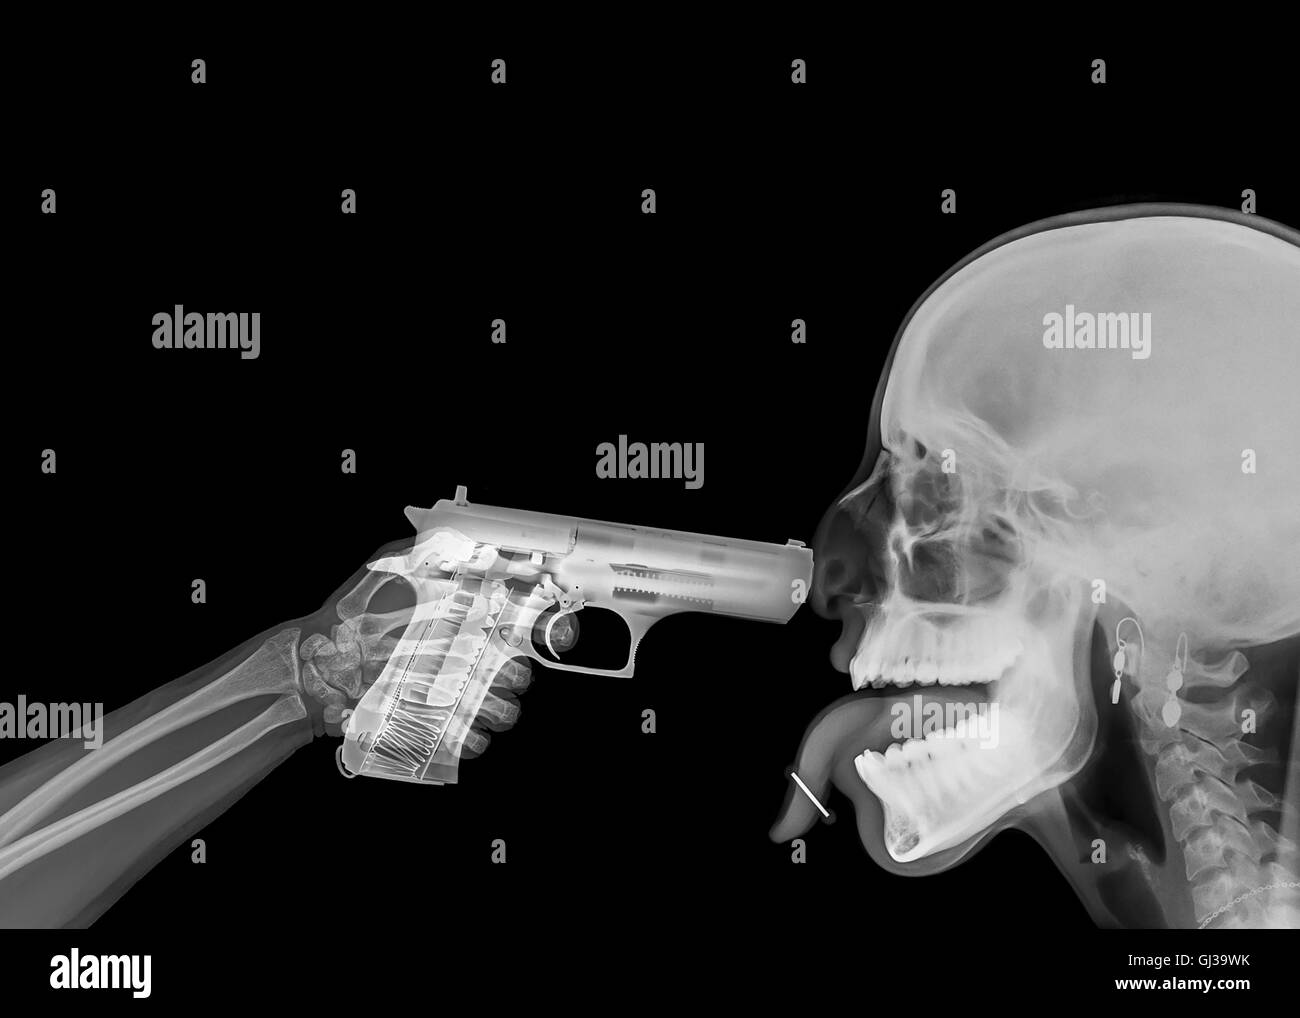 X ray of a hand pointing a handgun at someones head - Stock Image